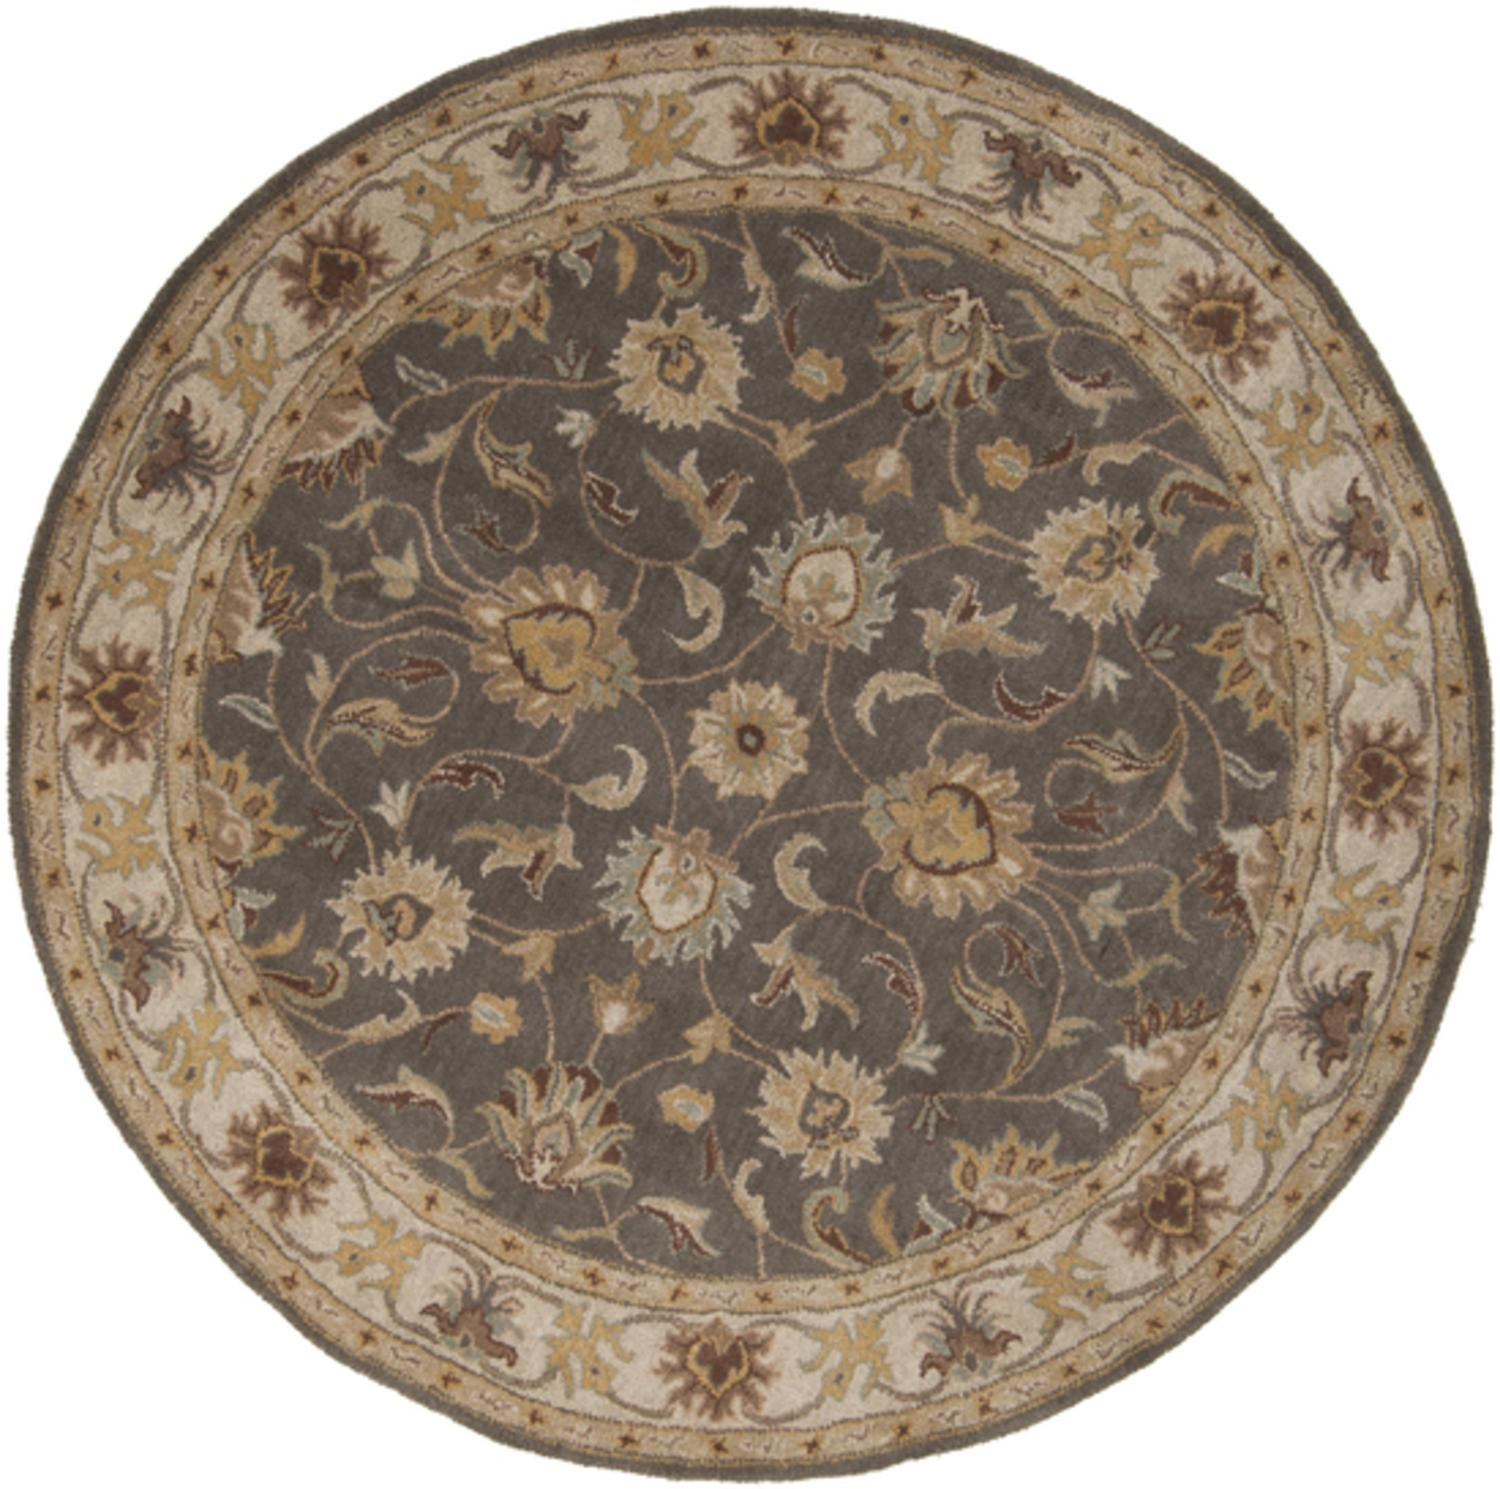 6' Augustus Heather Gray and Brown Taupe Hand Tufted Round Wool Area Throw Rug